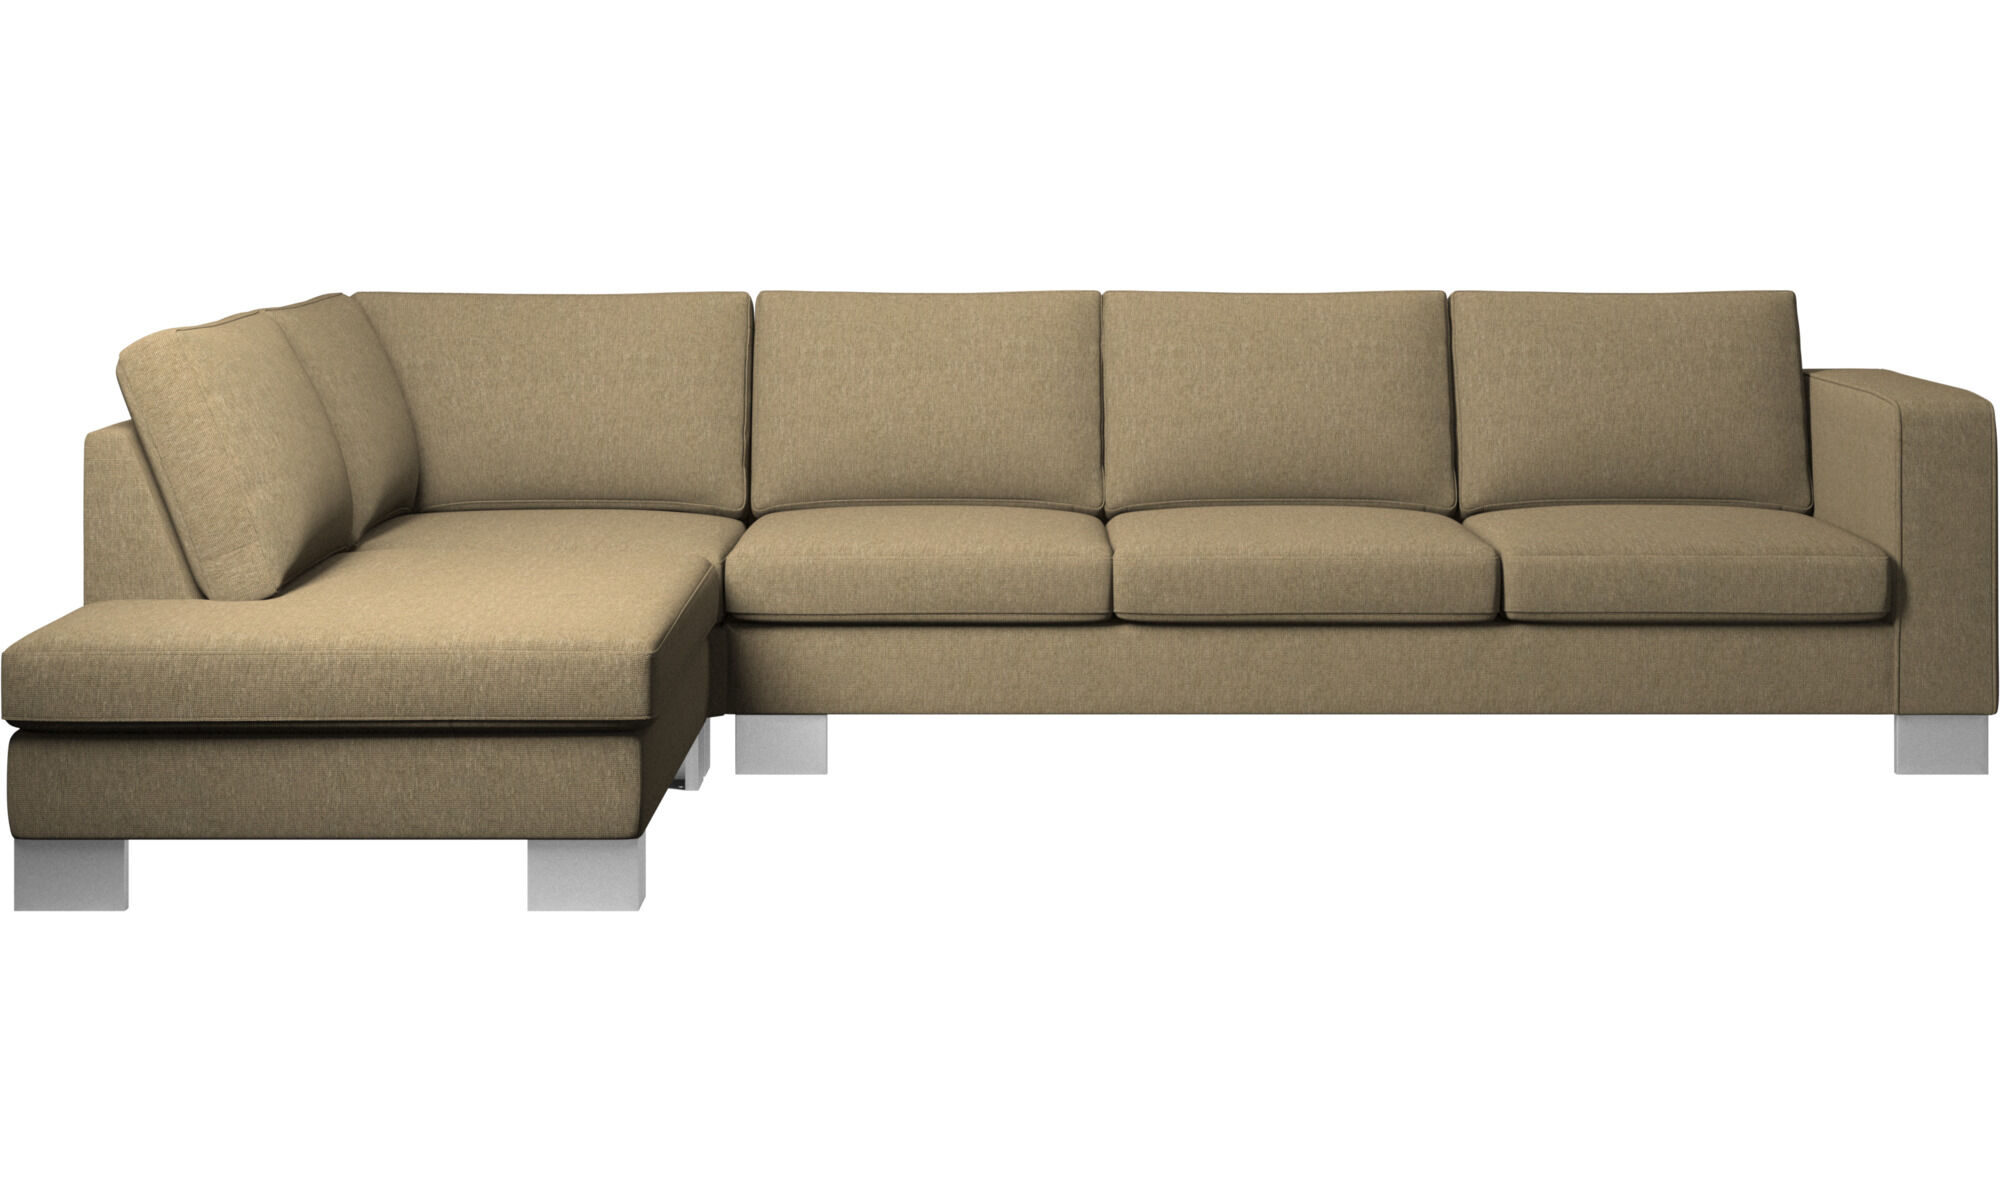 Sofas With Open End   Indivi 2 Corner Sofa With Lounging Unit   Green    Fabric